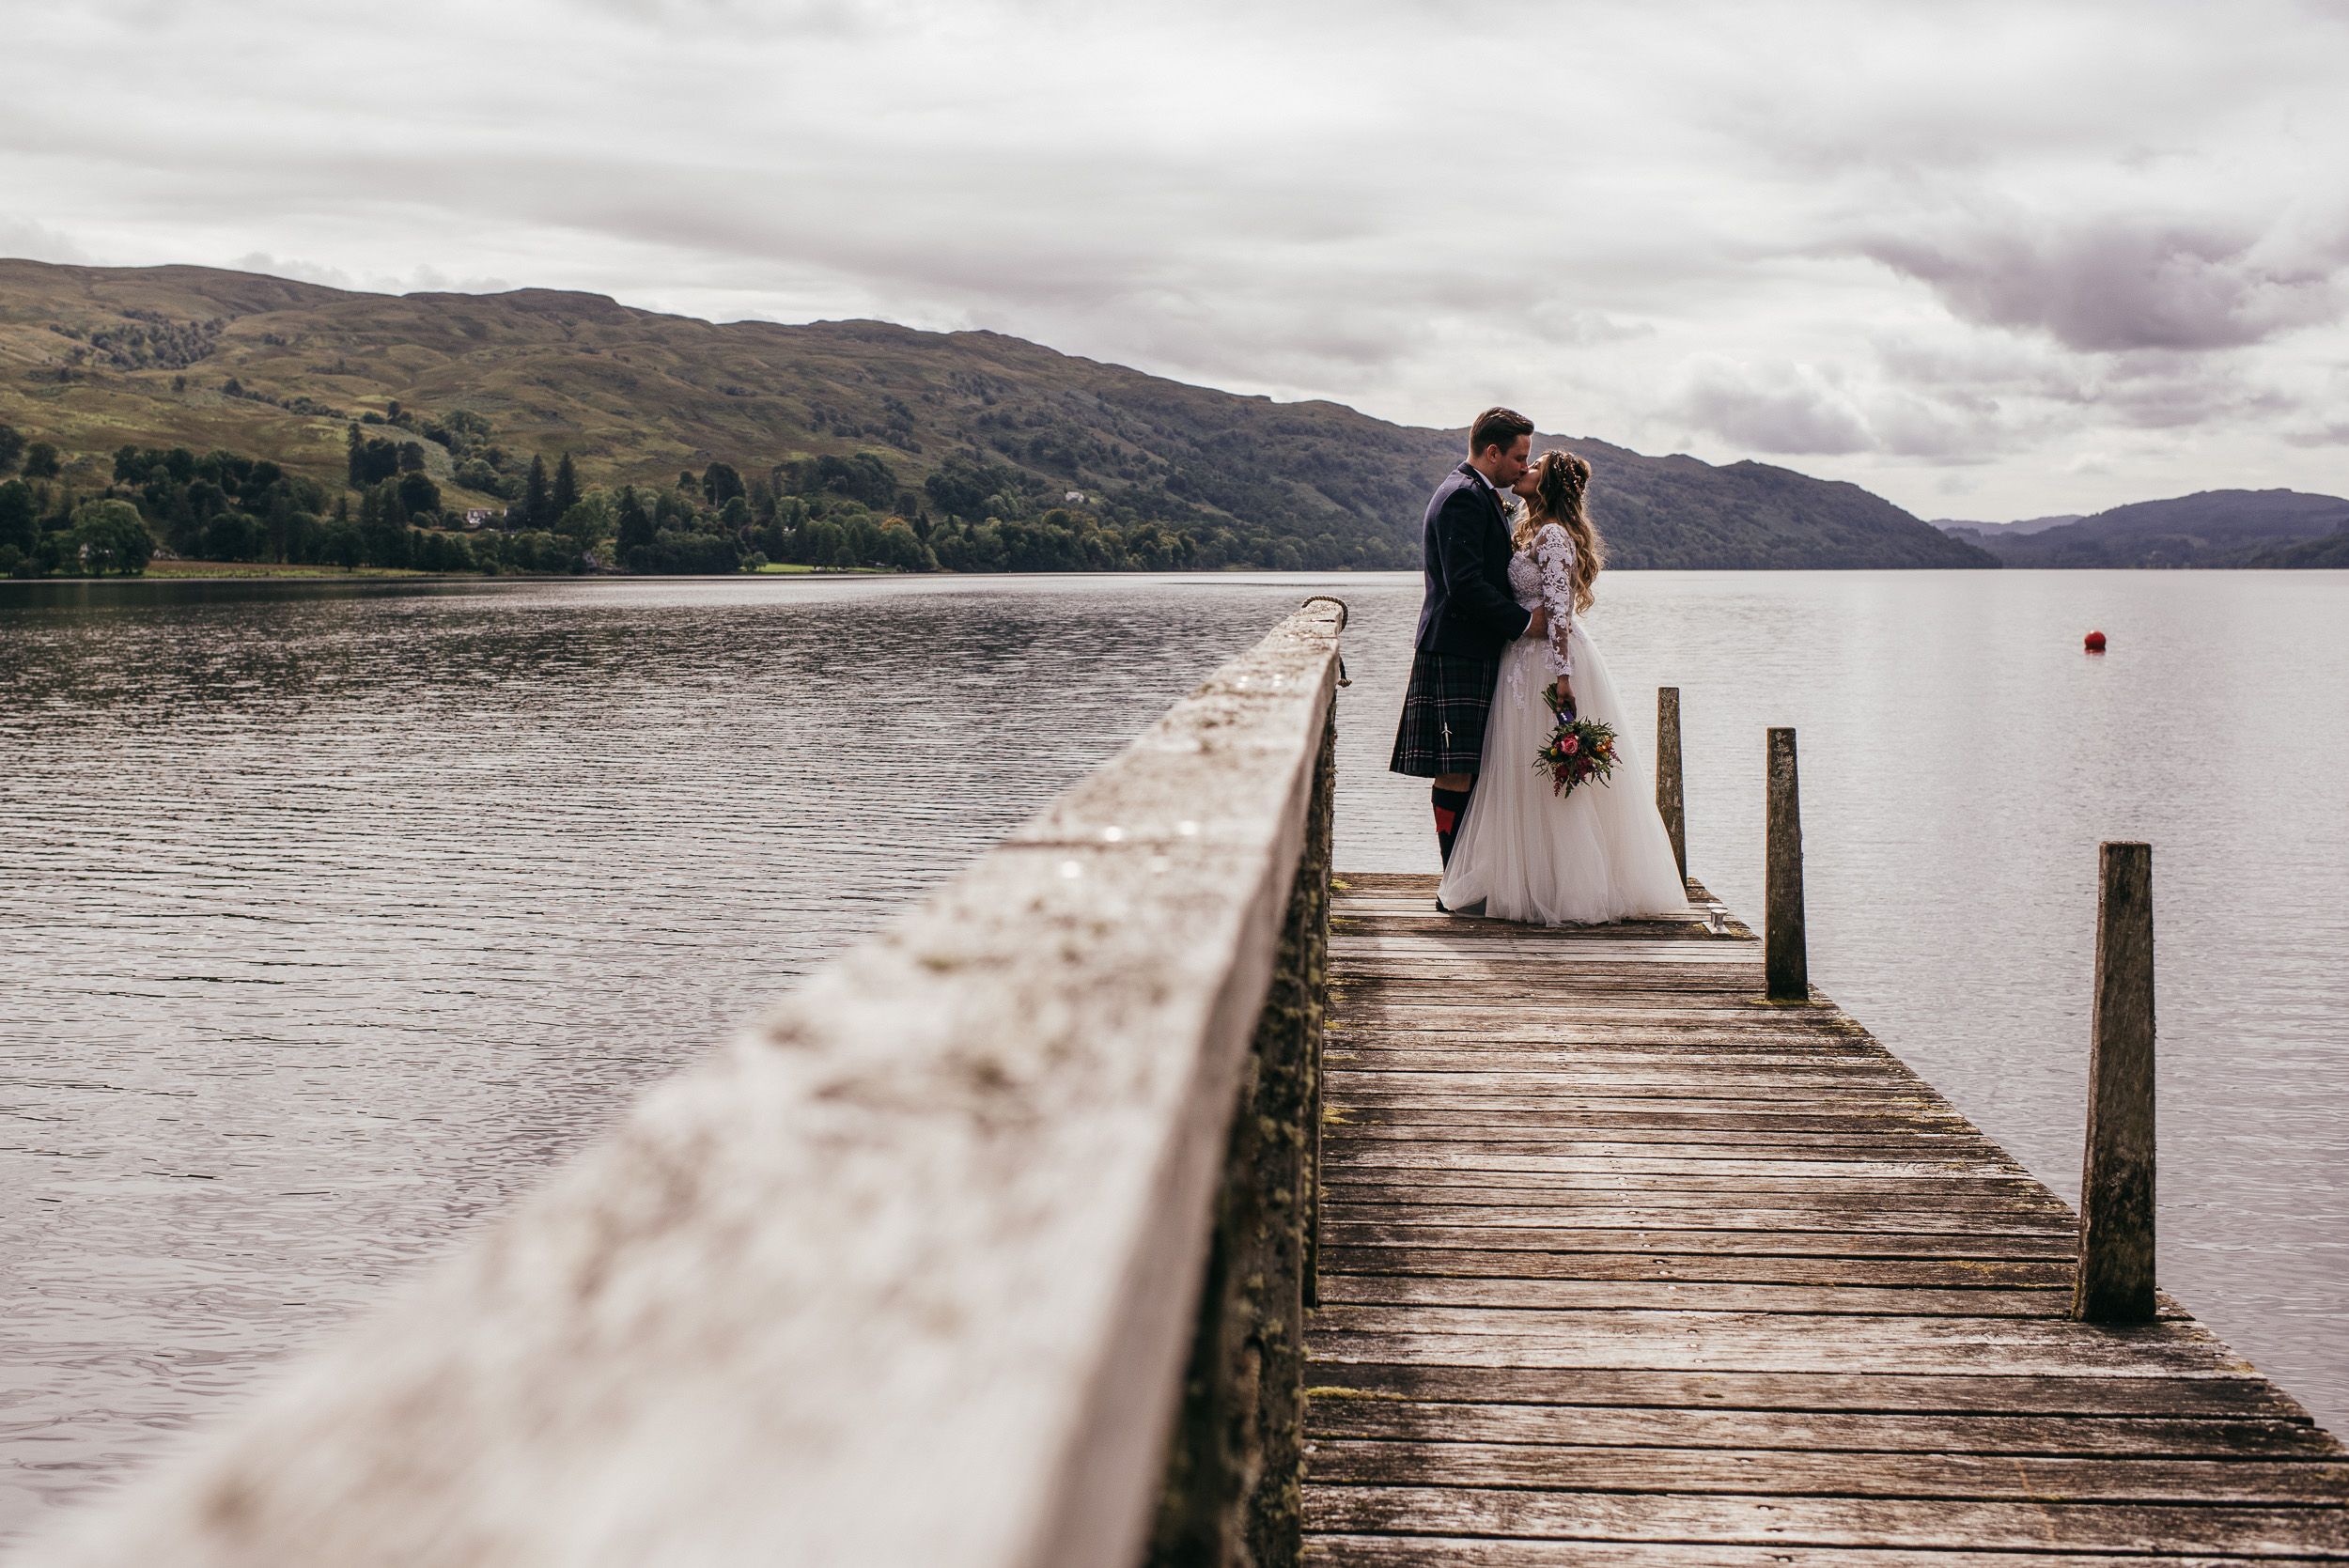 Bride and groom on jetty